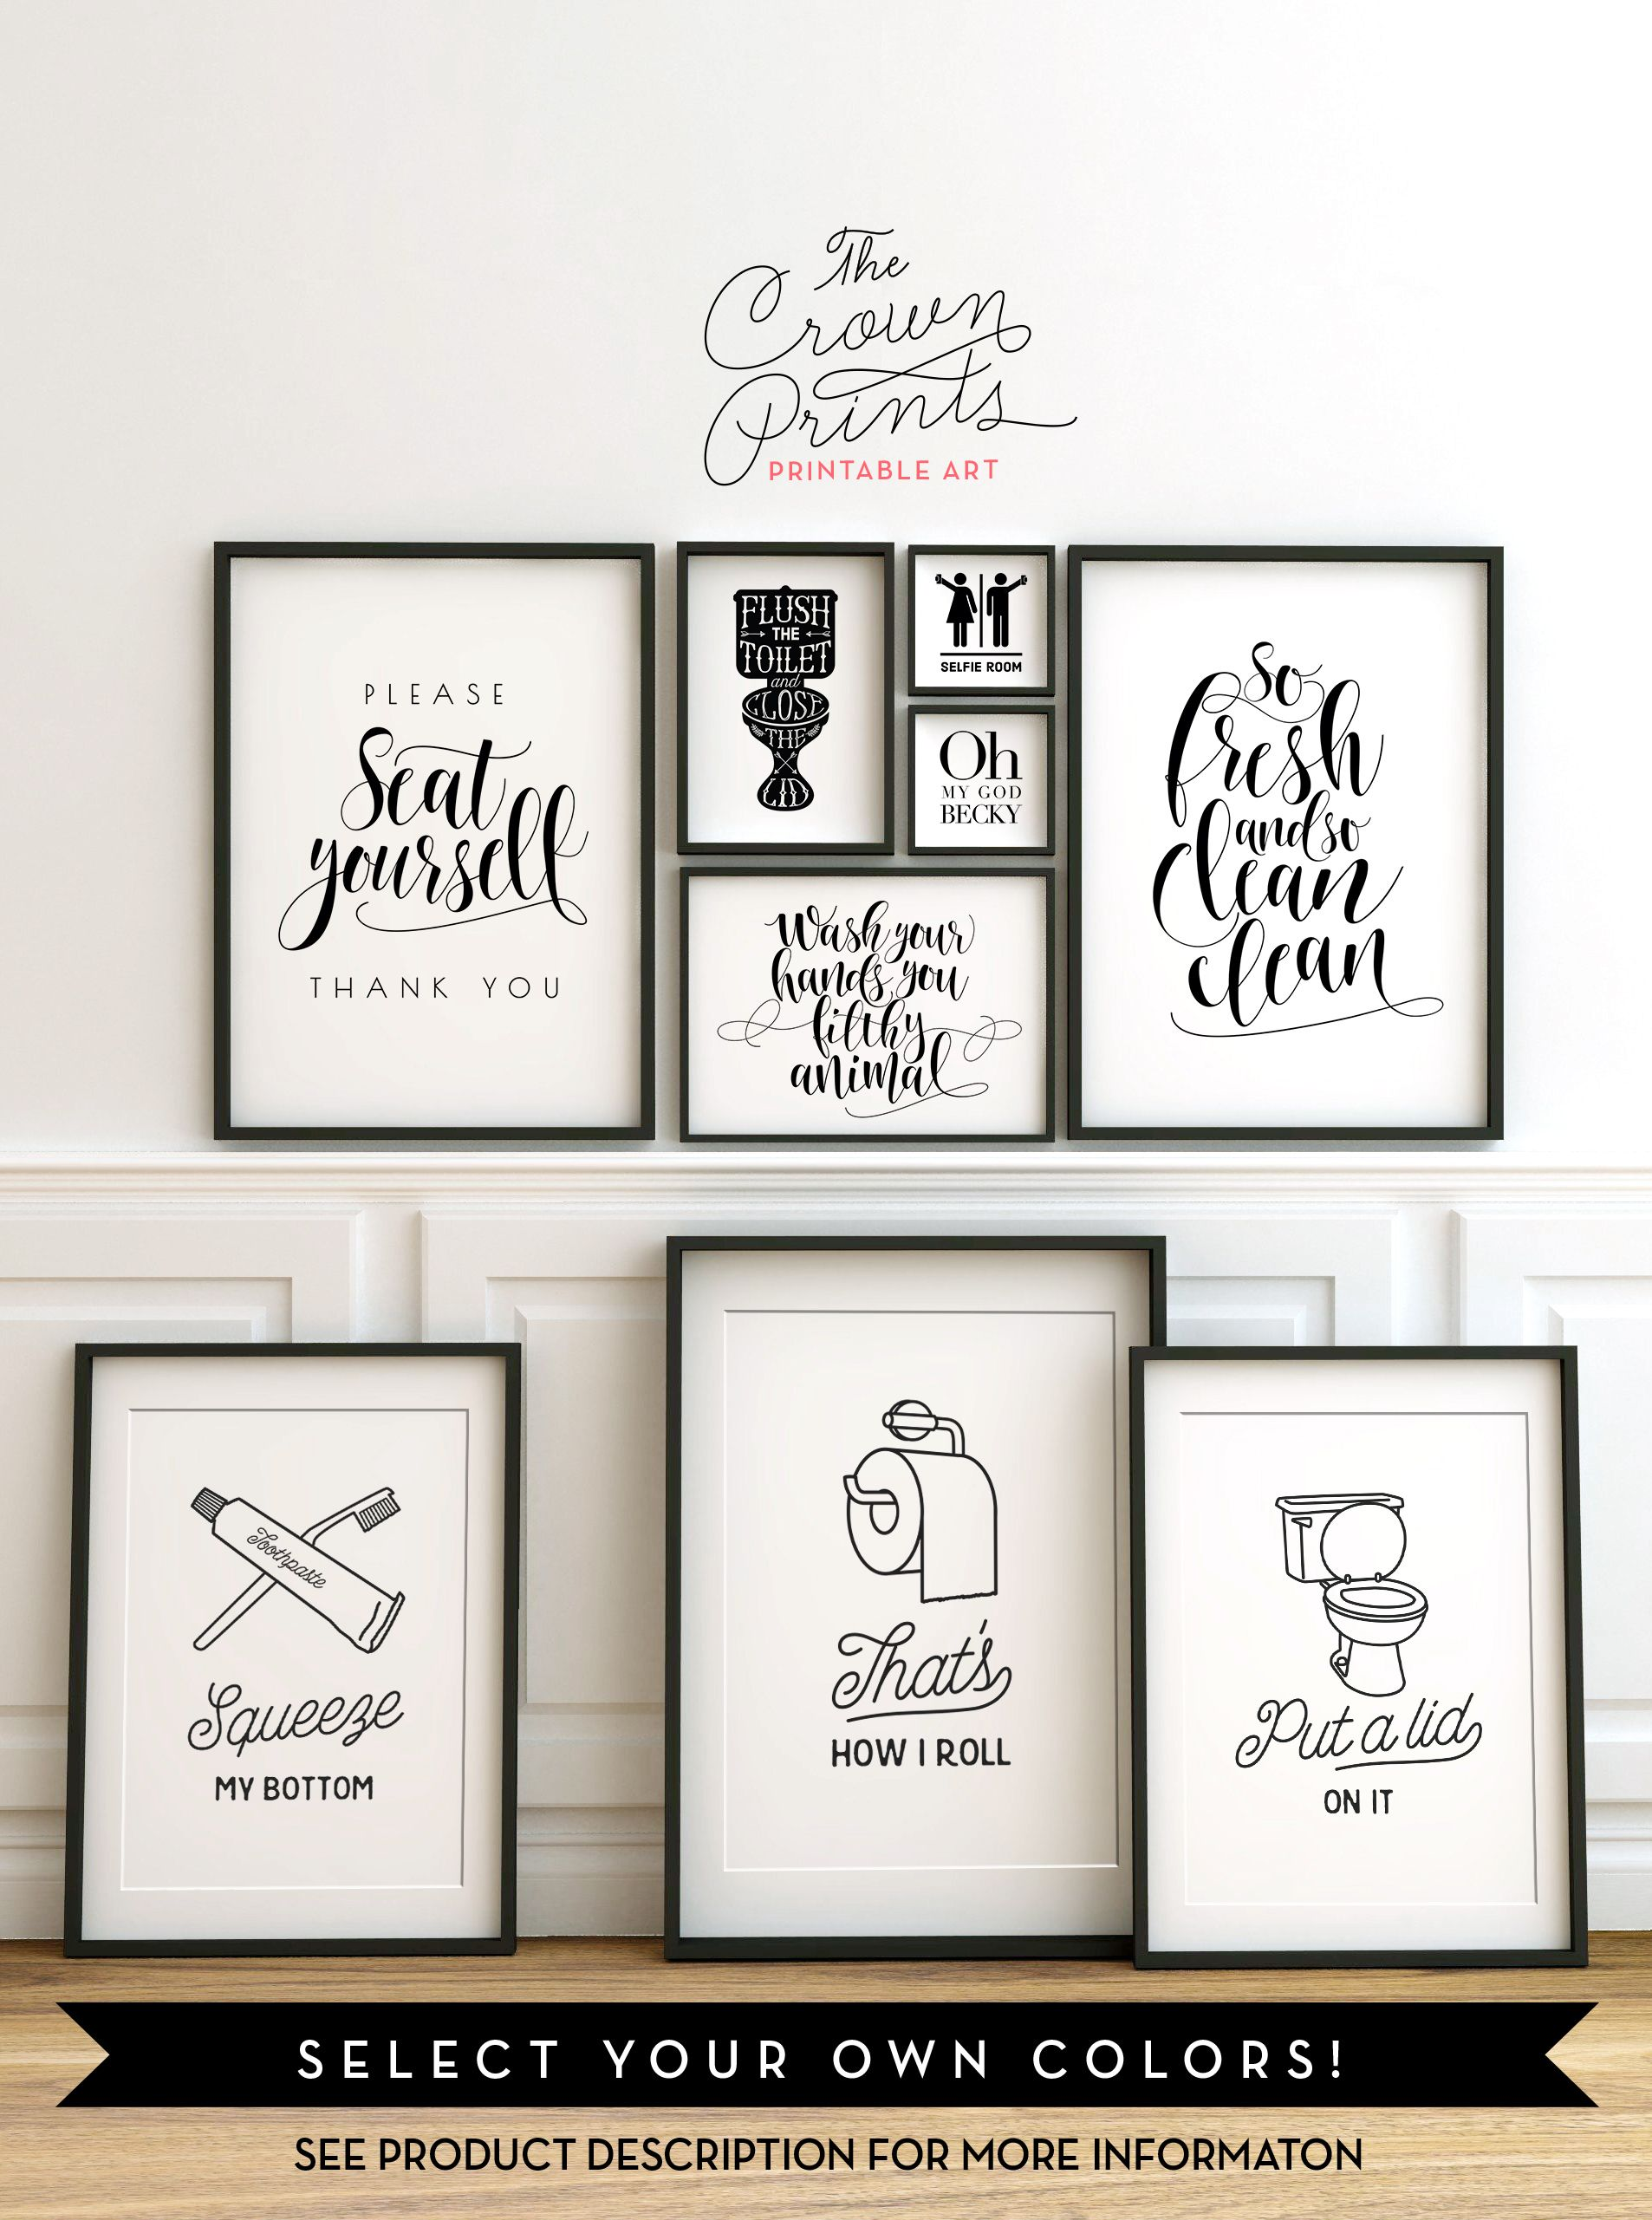 Printable bathroom wall art from the crown prints on etsy for Bathroom wall decor images